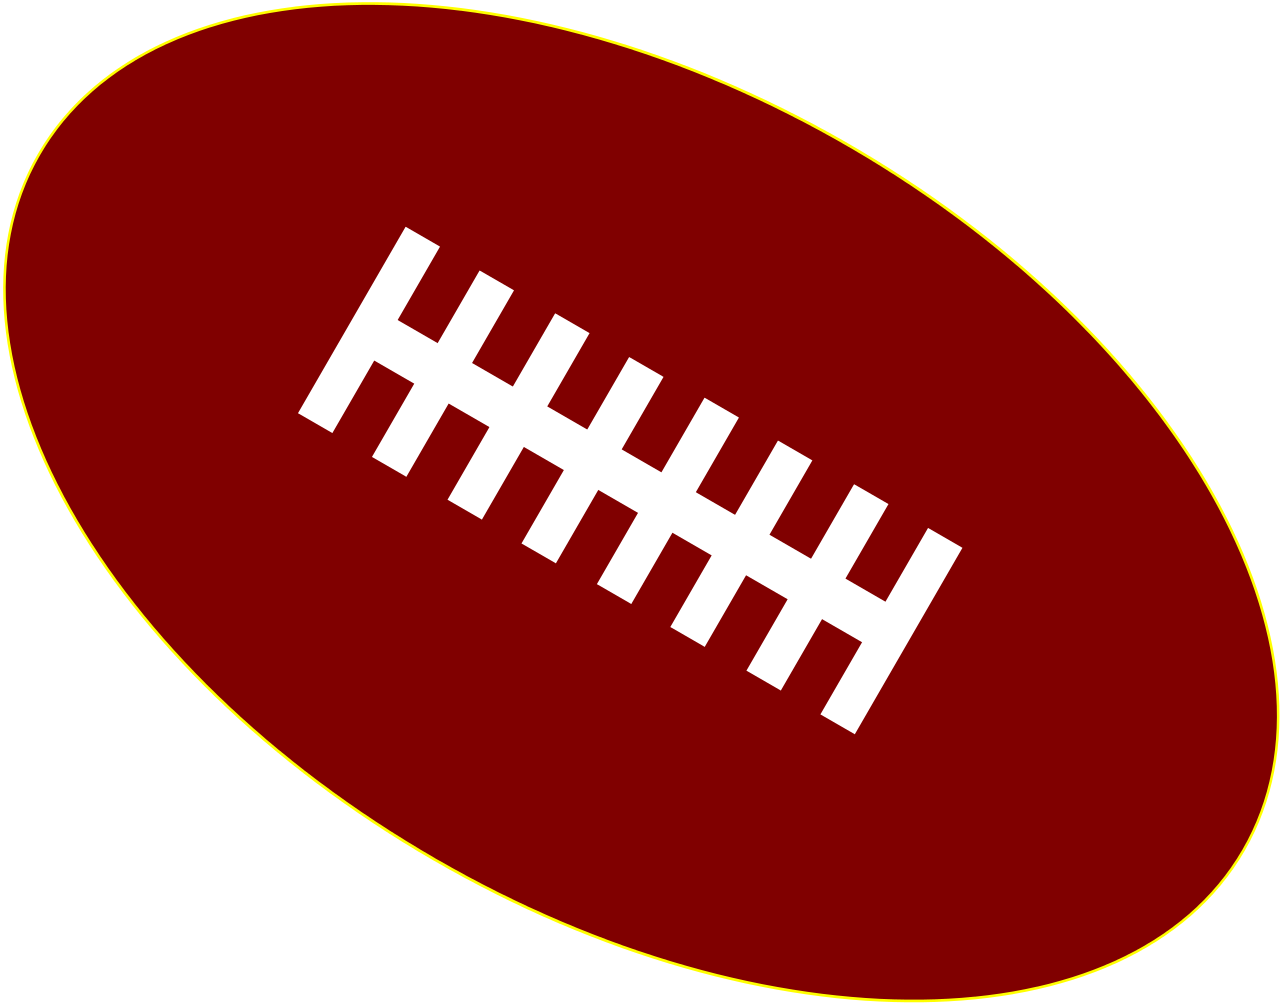 Nfl football png image. File american ball svg